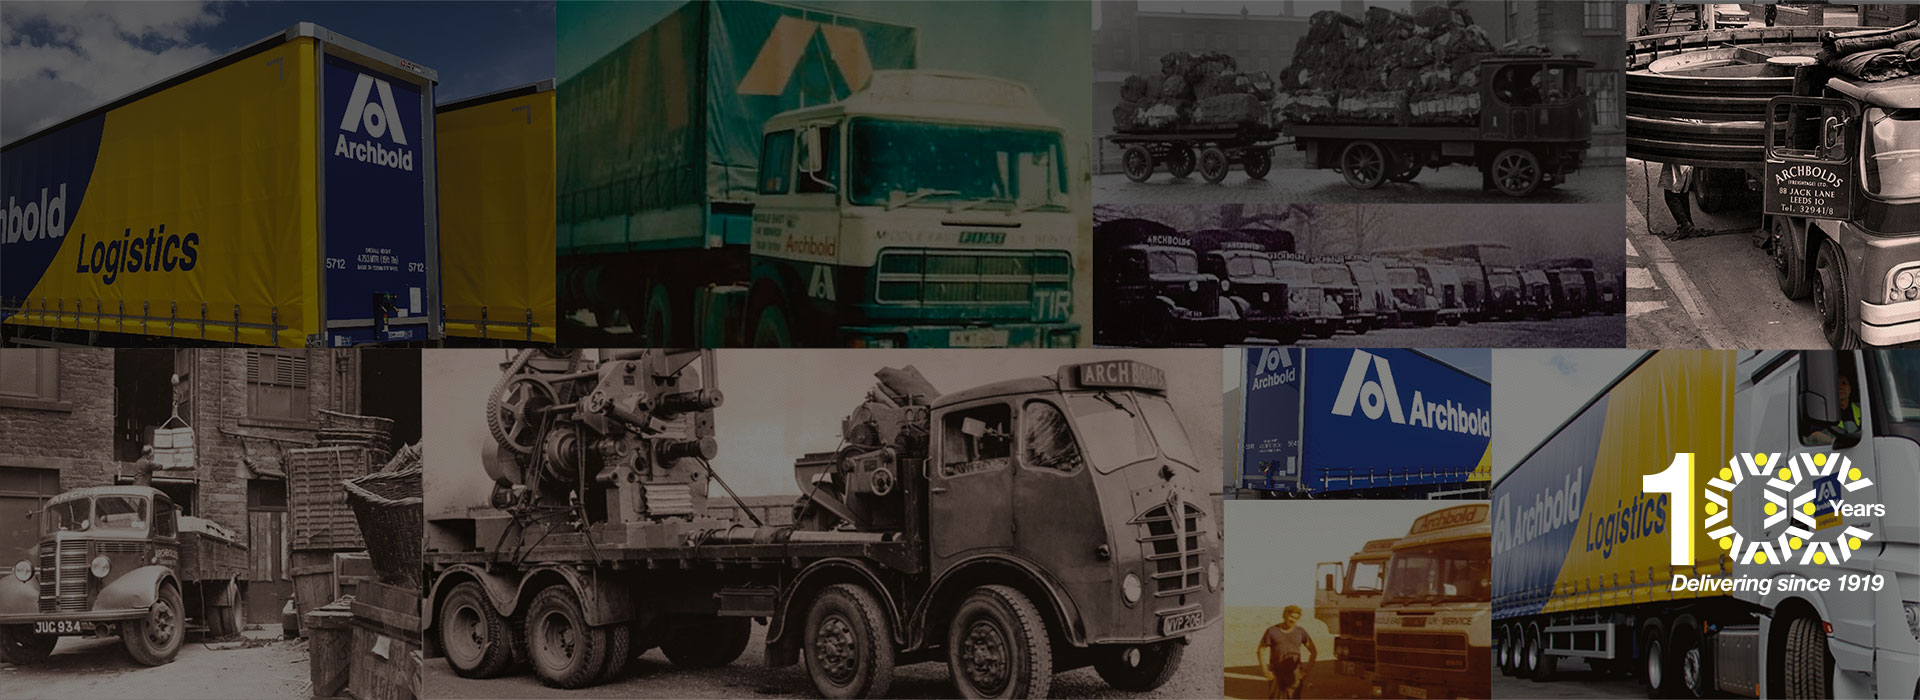 Archbold Logistics celebrating over 100 years of experience